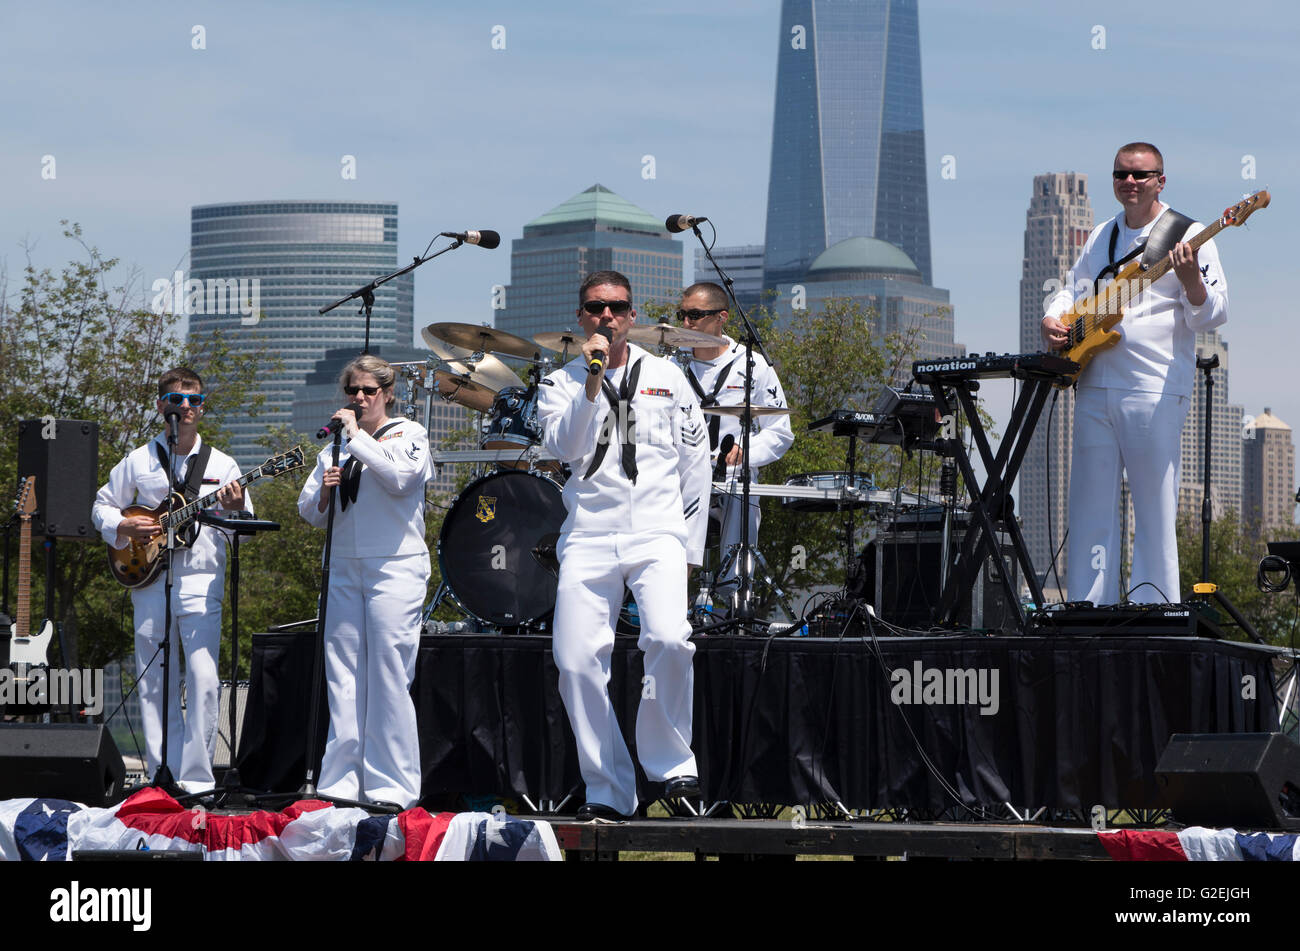 US Navy band playing on stage in front of the NYC skyline. Fleet Week event at Liberty State Park. - Stock Image